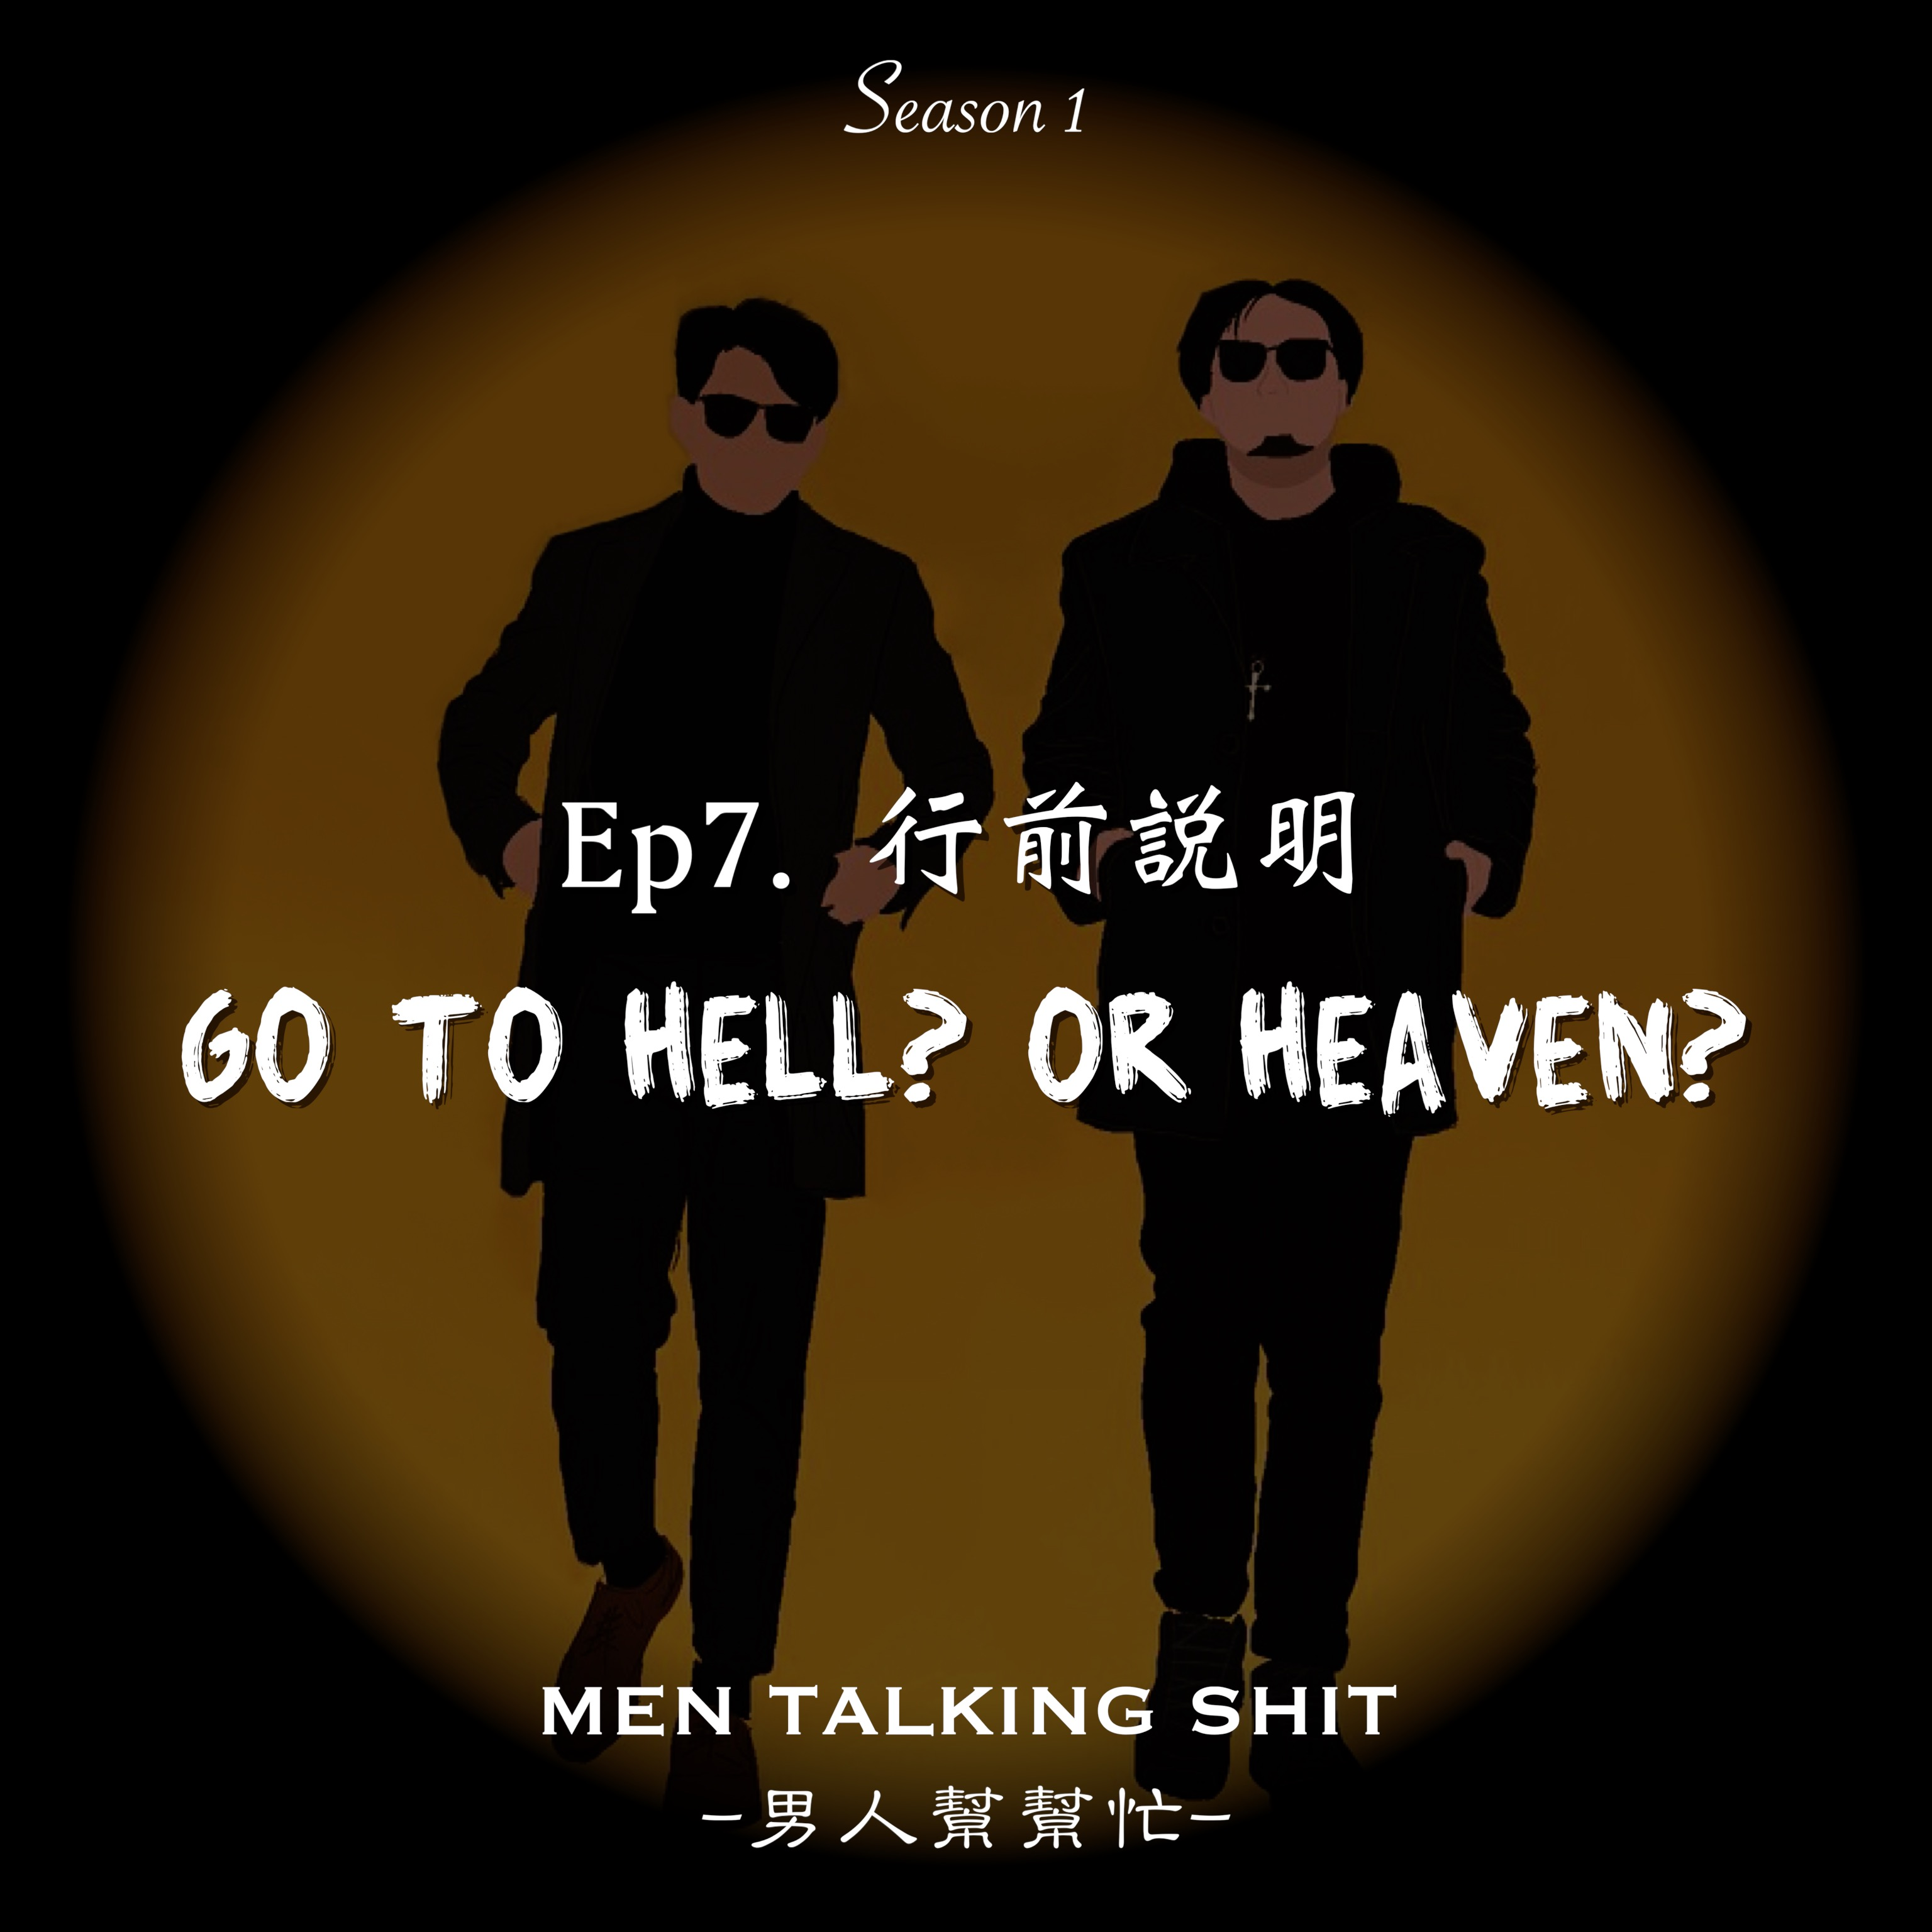 Ep7. 行前說明 Go To Hell or Heaven?